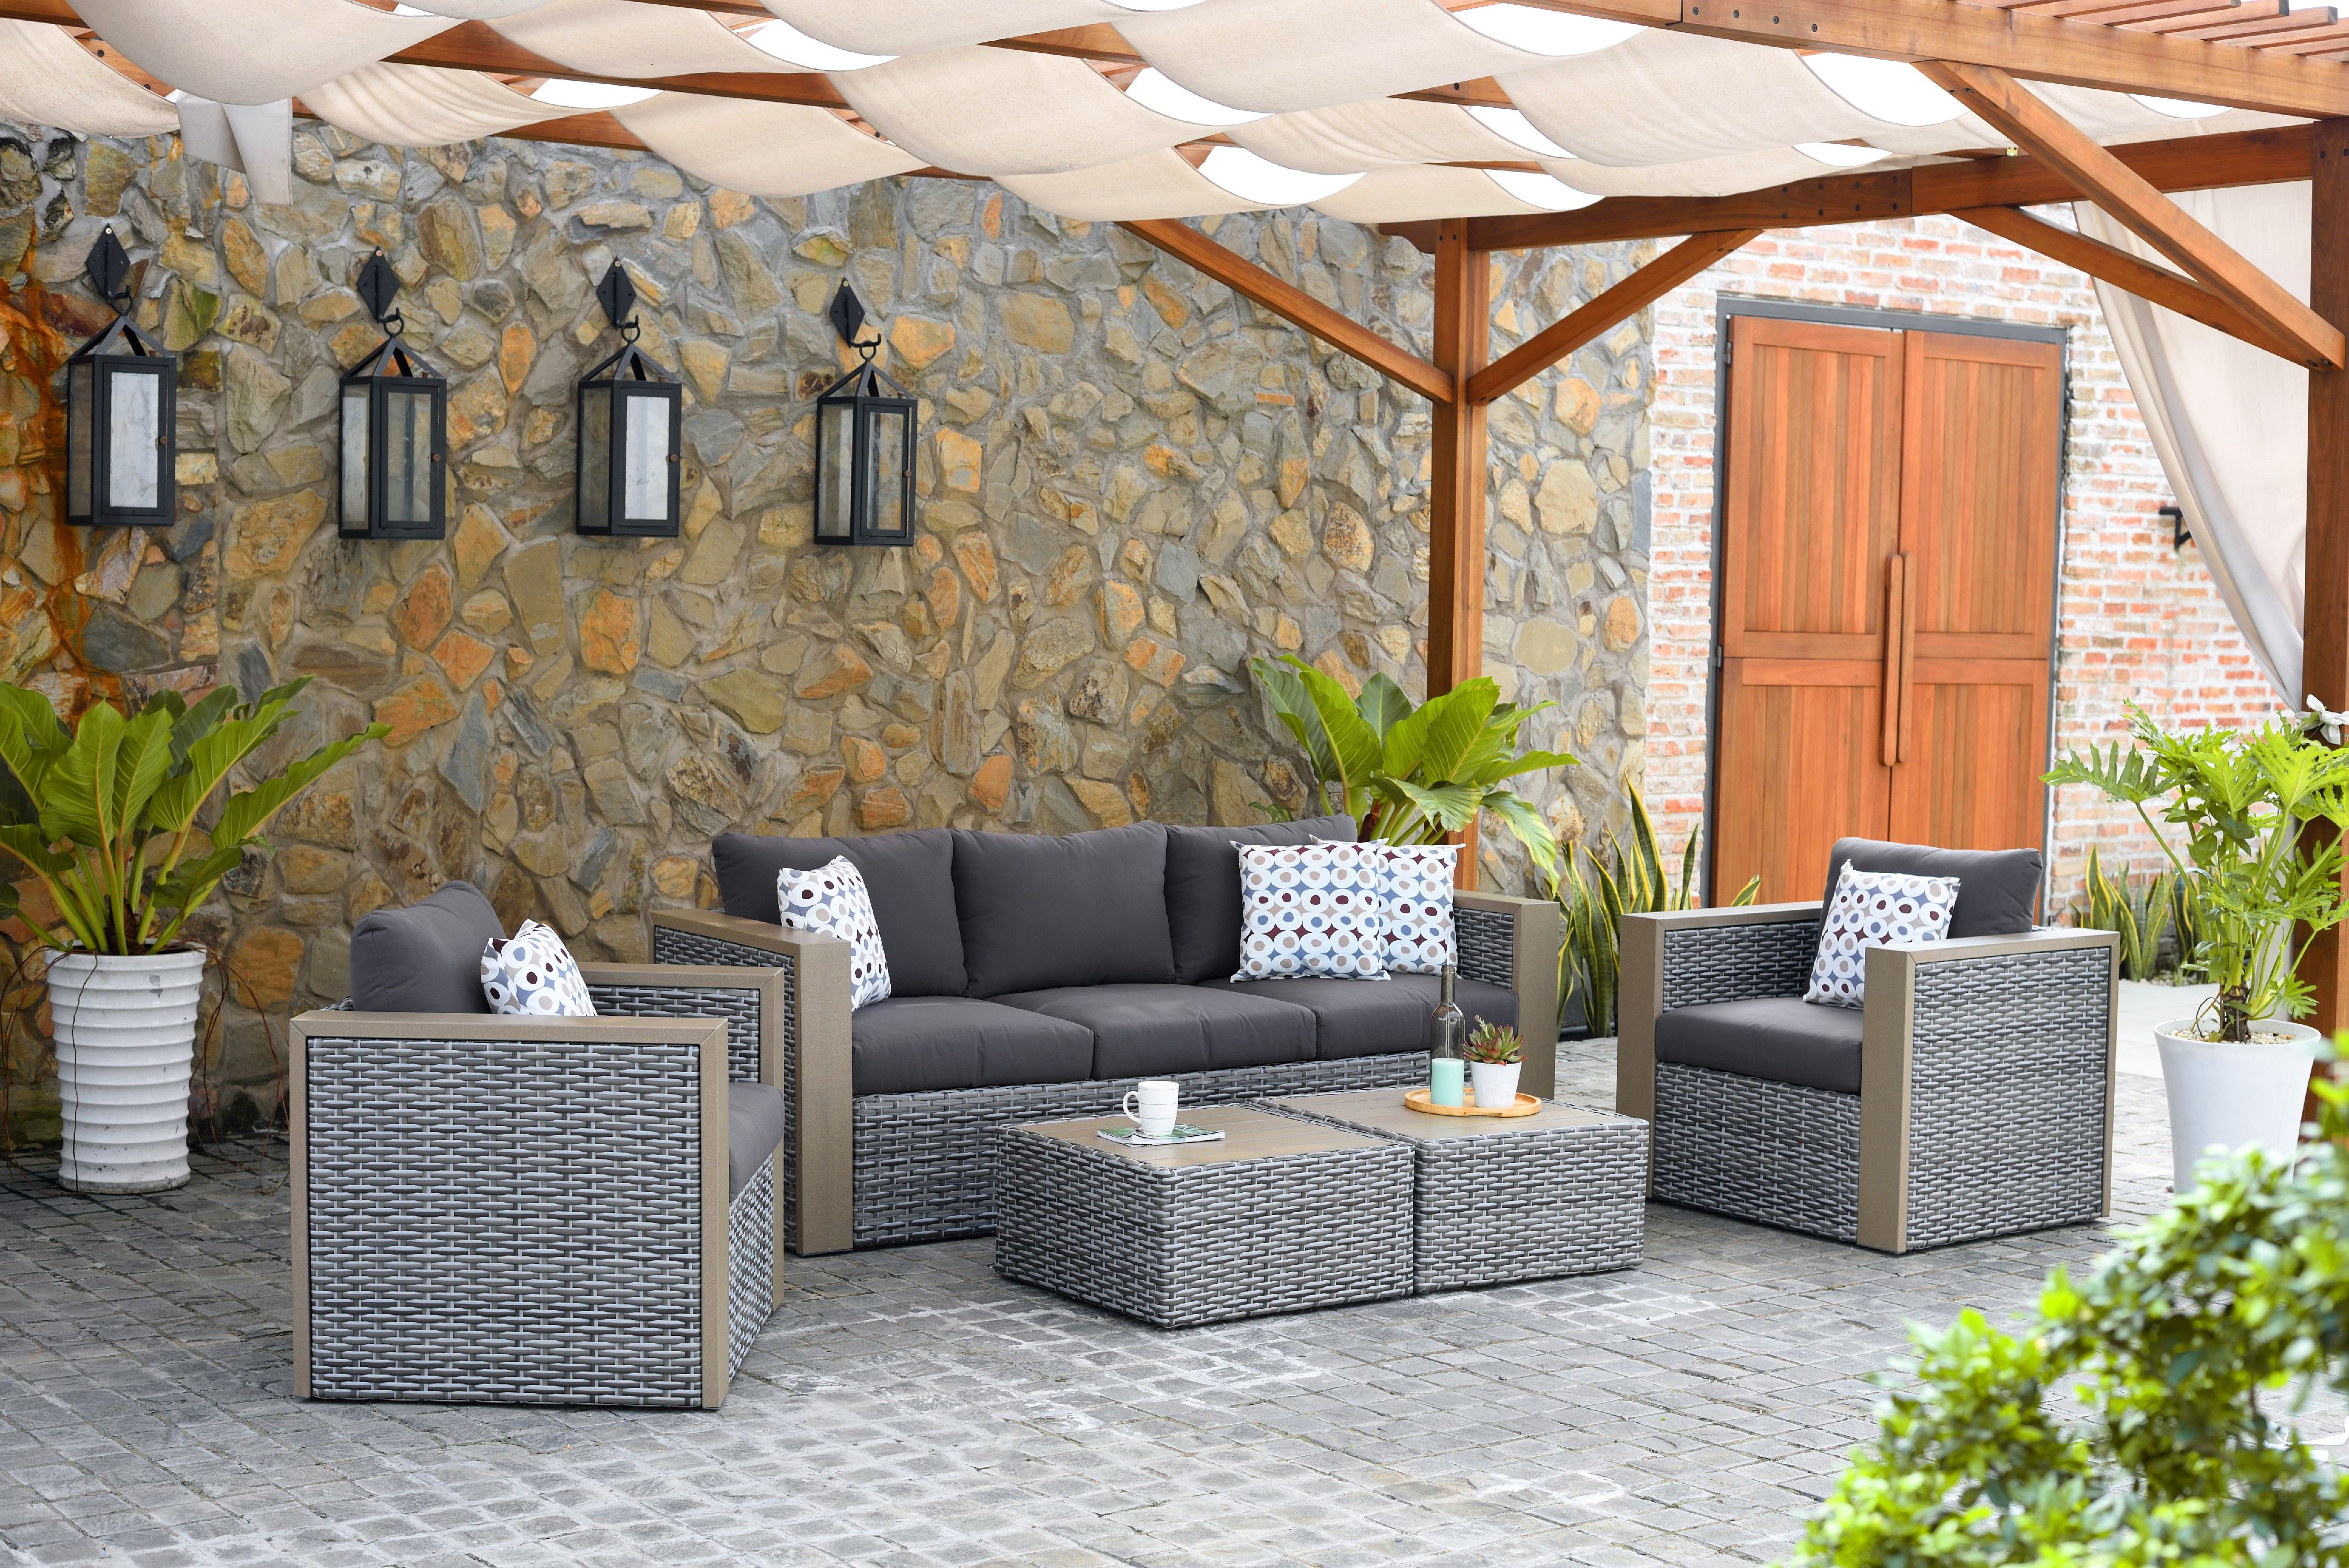 Mustang Outdoor All-Weather Wicker 5-Piece Patio Conversation Set, Grey by INTERNATIONAL HOME